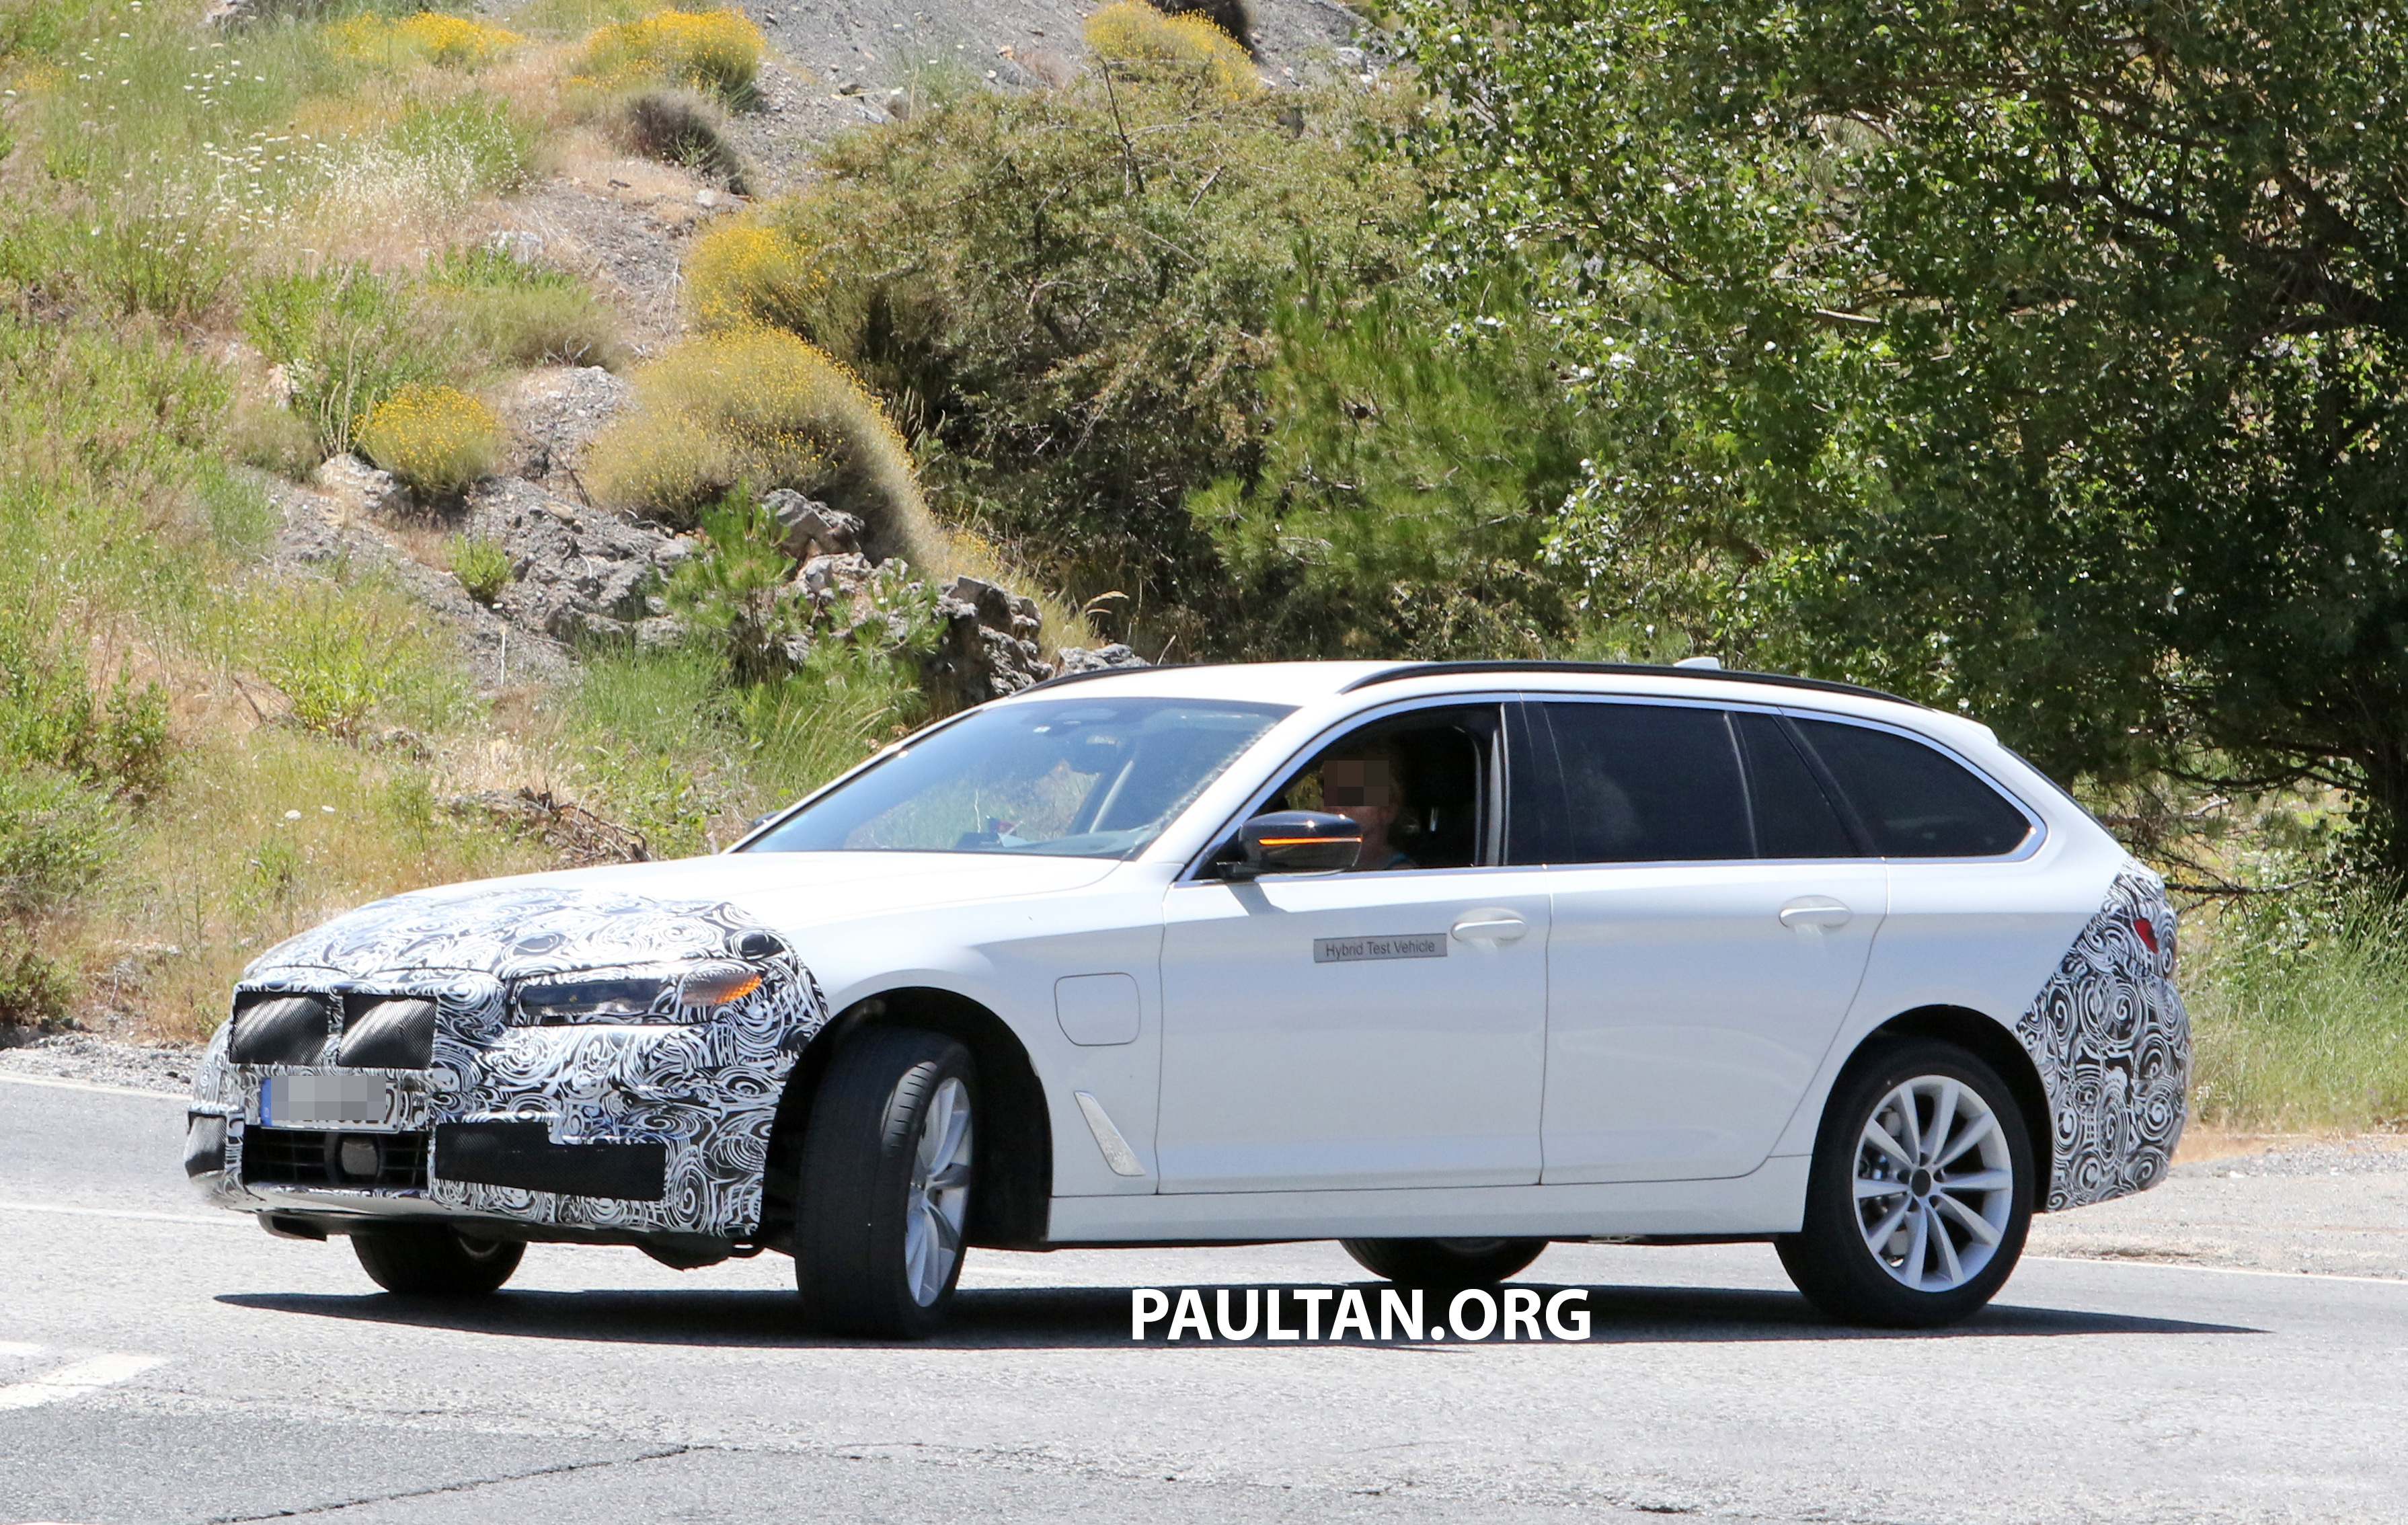 Spyshots G31 Bmw 5 Series Touring Lci Spotted Paul Tan Image 984987